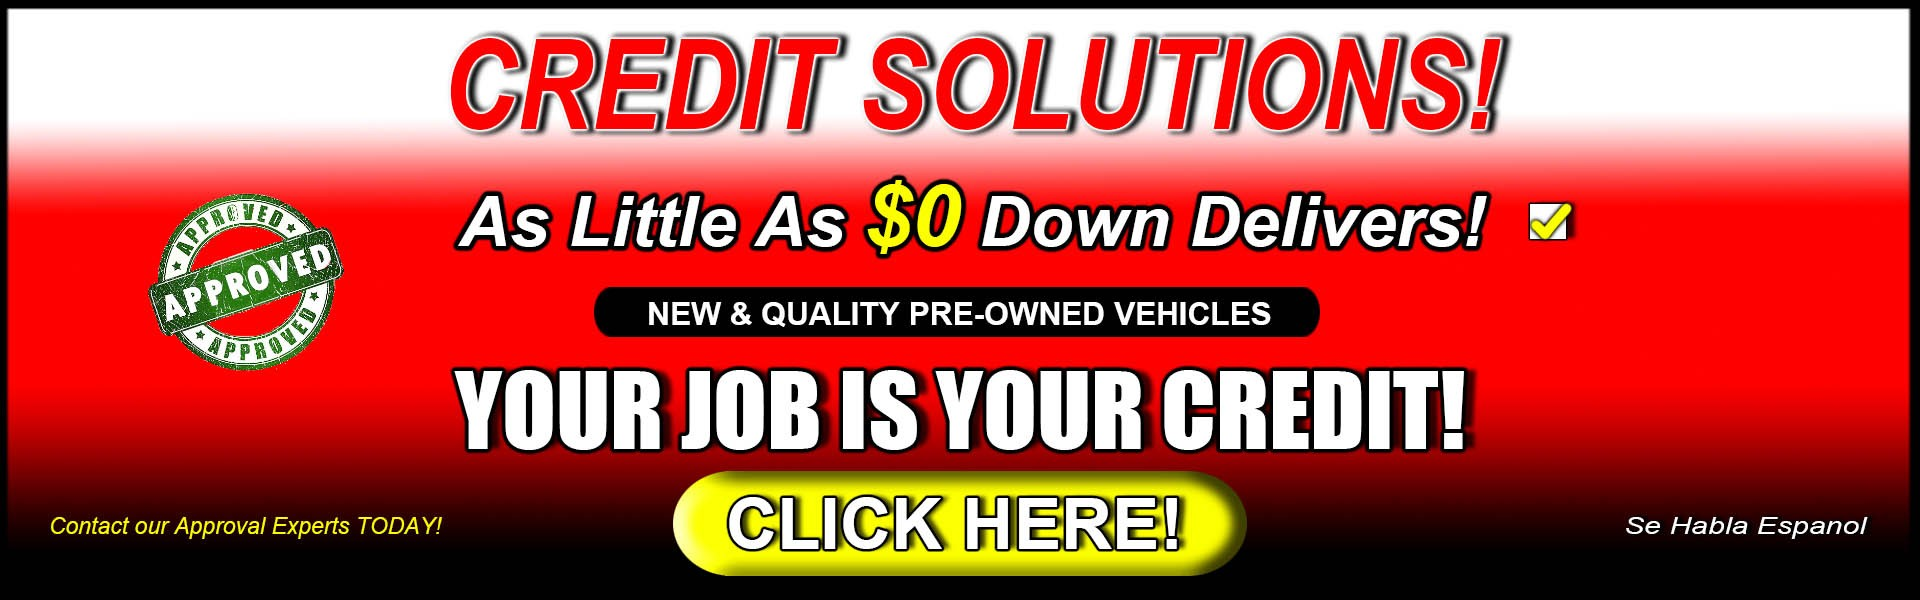 Credit Solutions